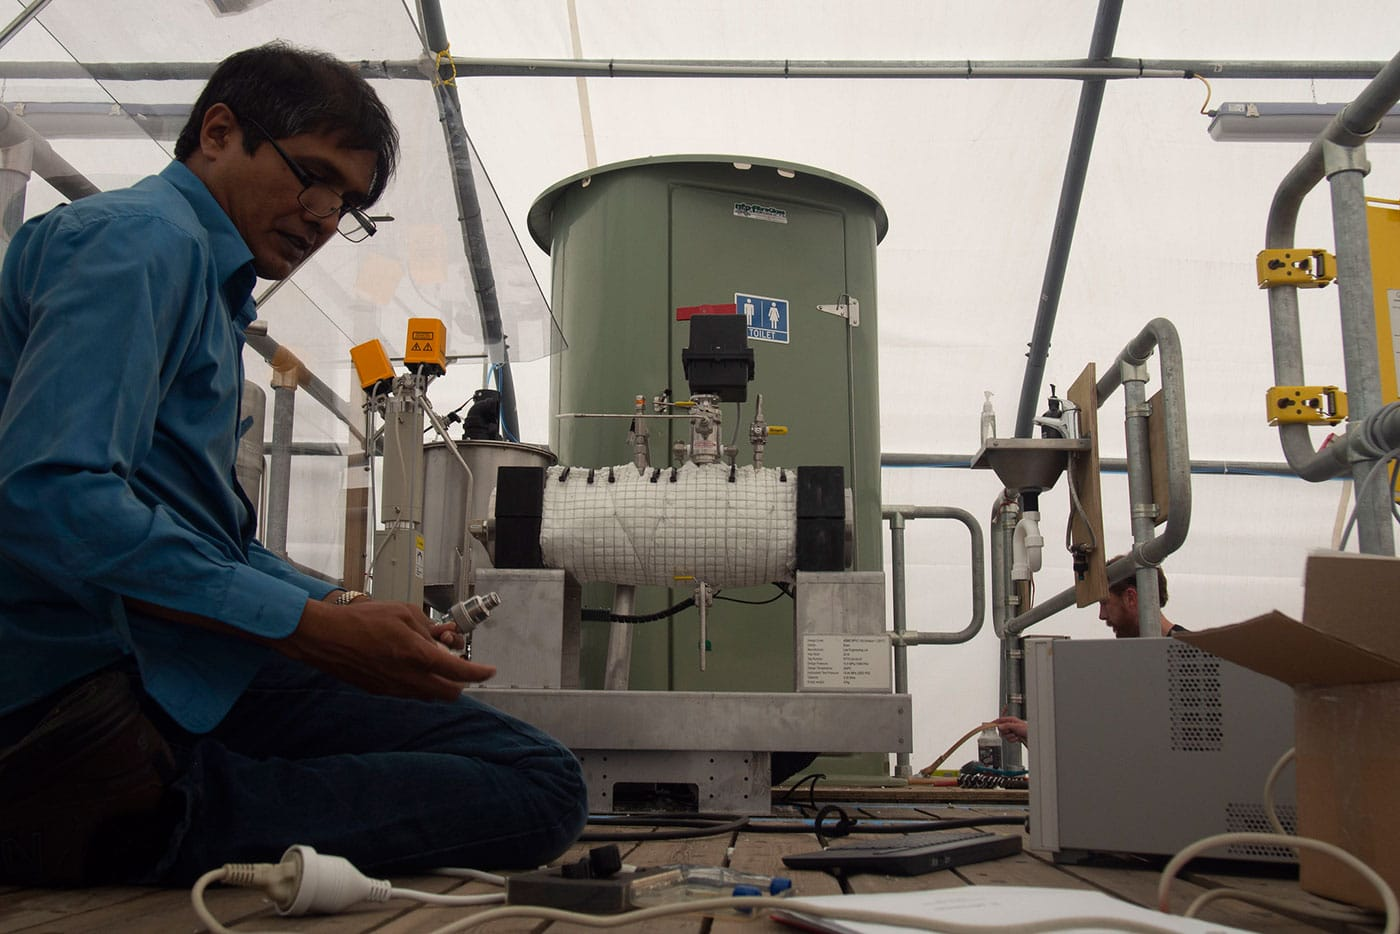 A poop vaporizing toilet to solve the sanitation problem